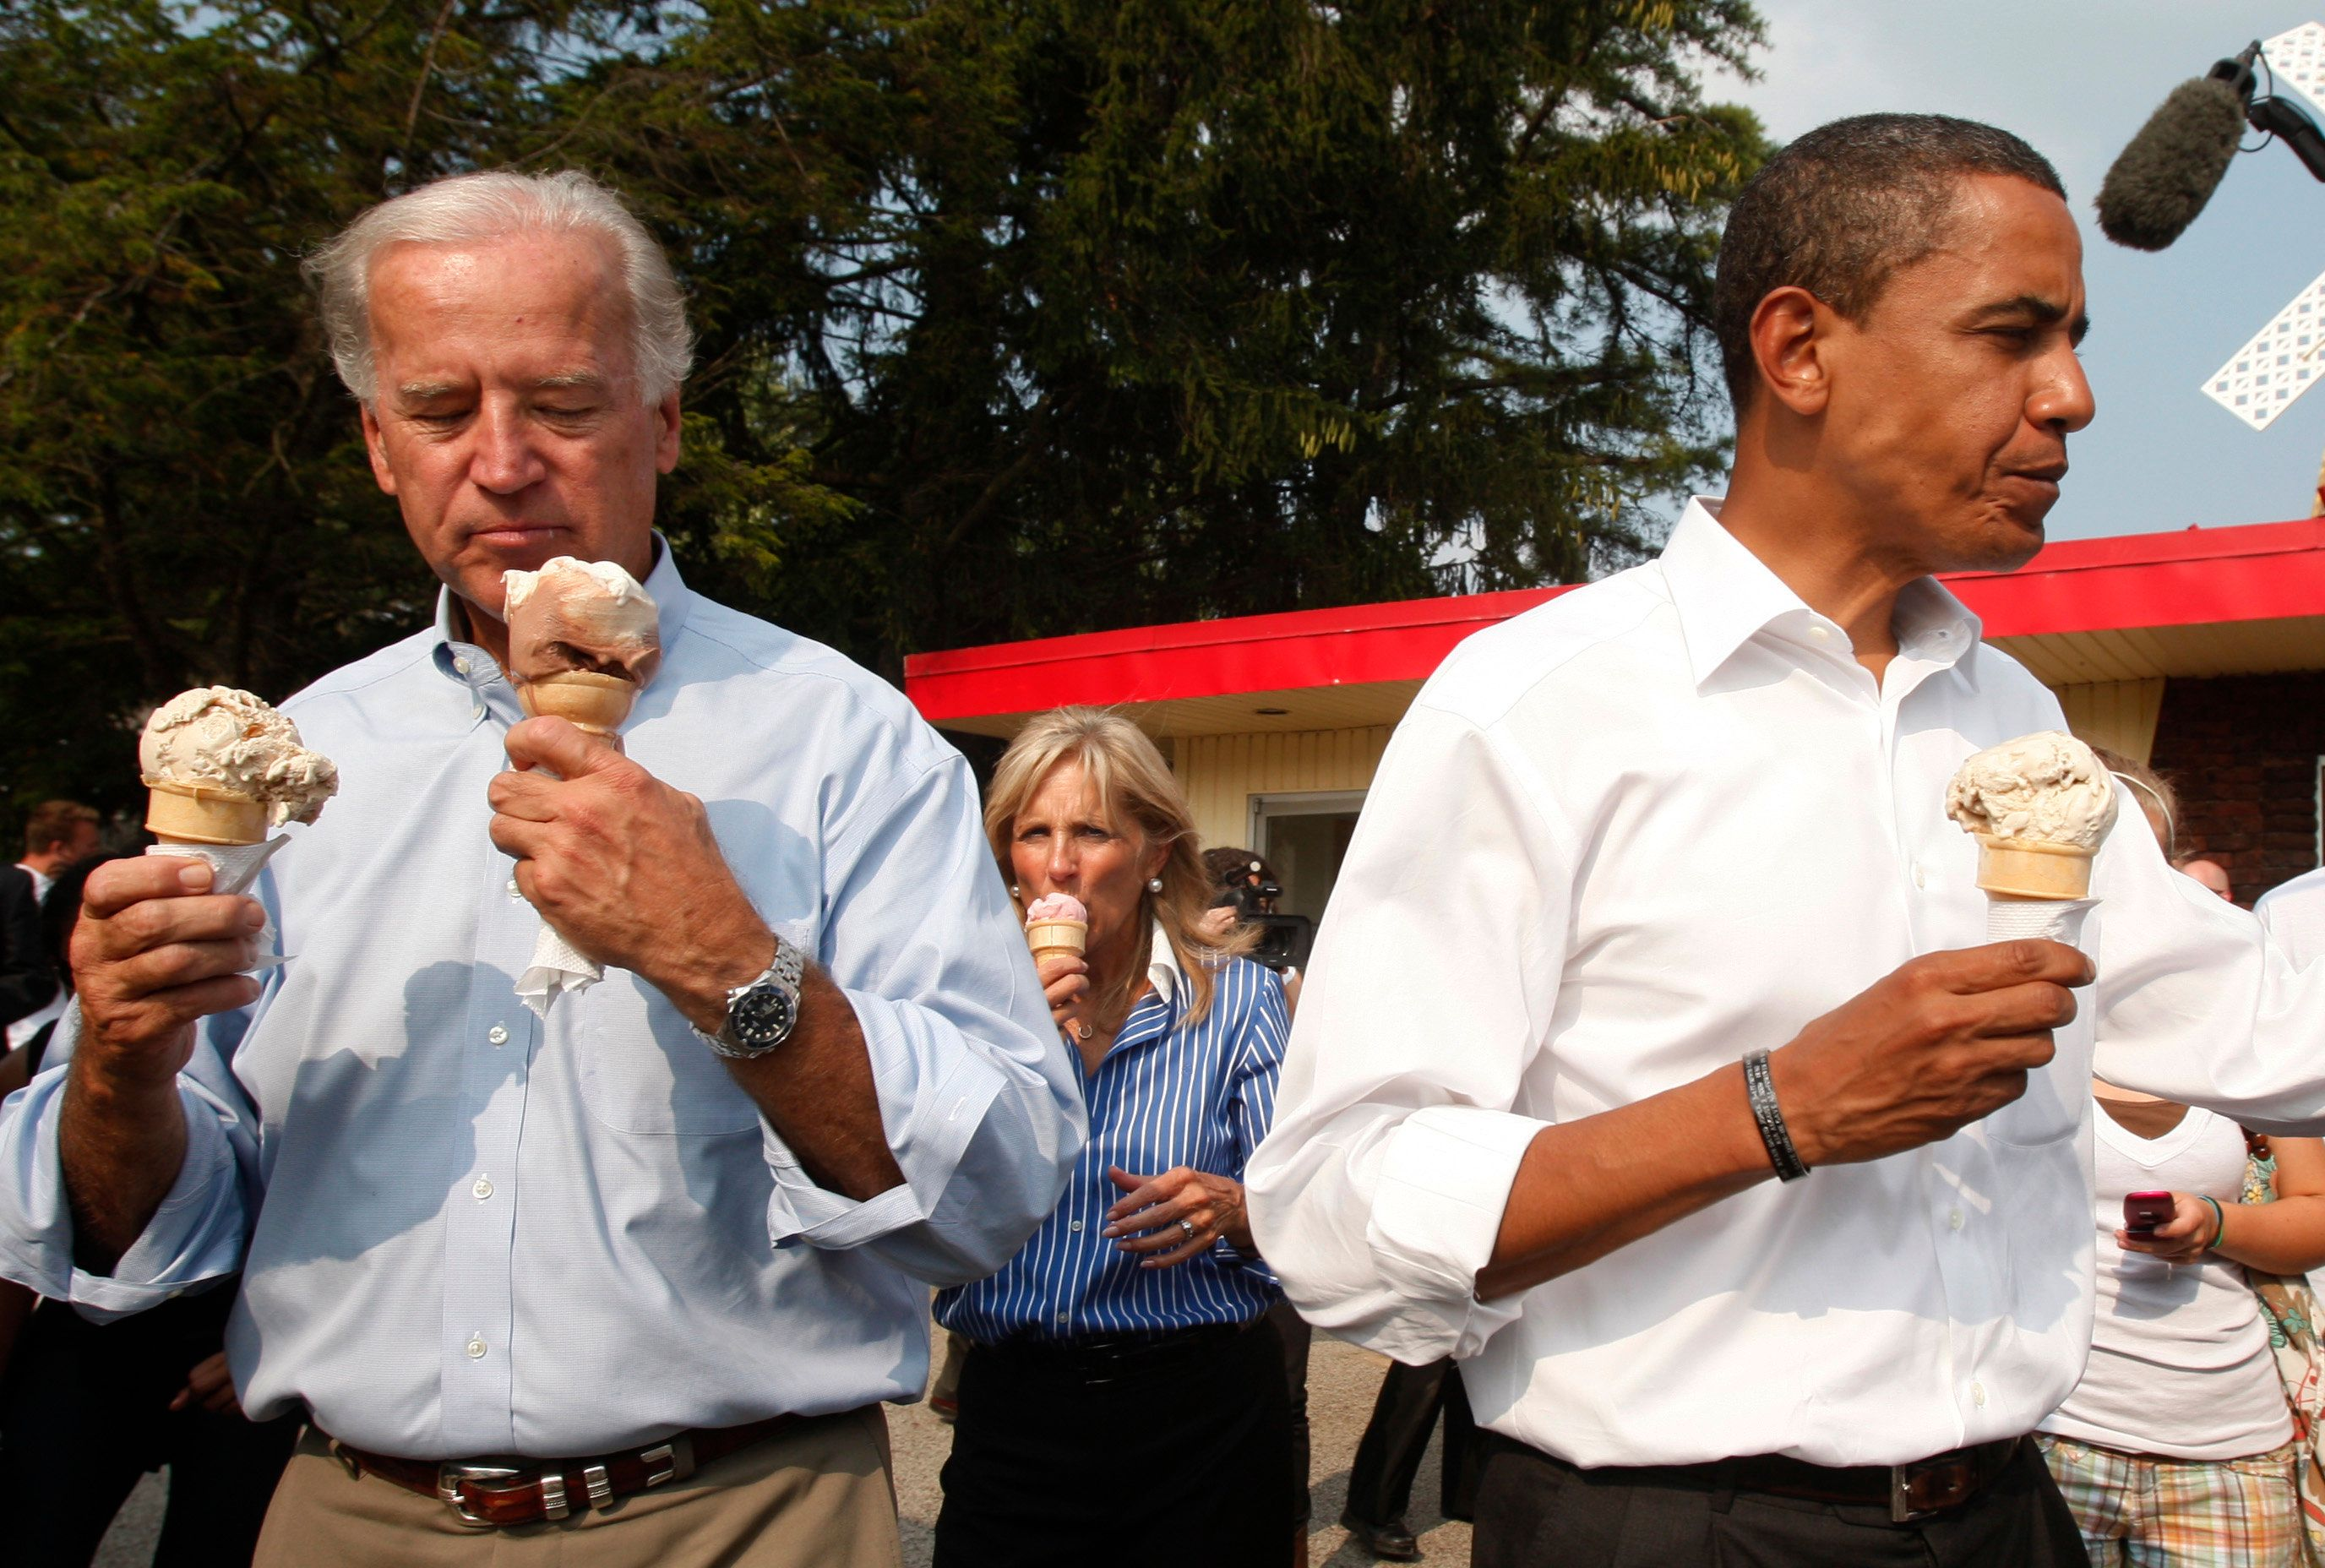 At Last Joe Biden Gets An Ice Cream Flavor Named After